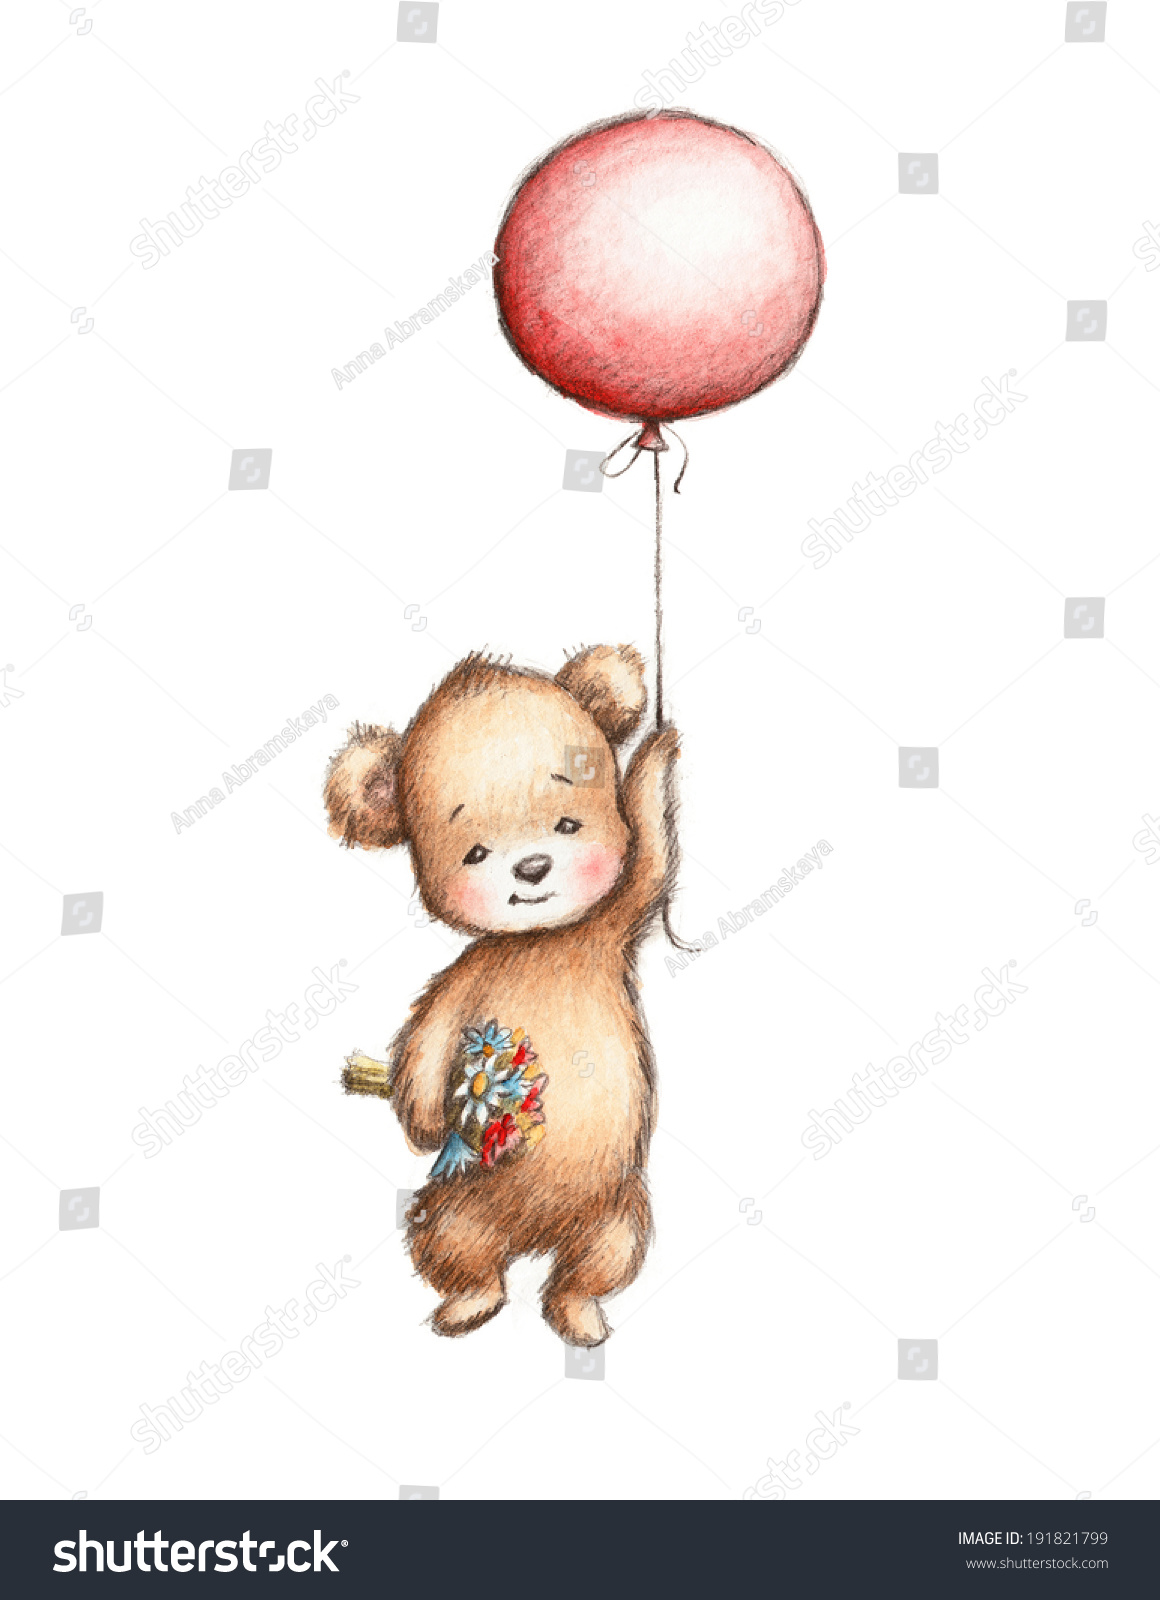 The Drawing Of Teddy Bear With Red Stock Photo 191821799